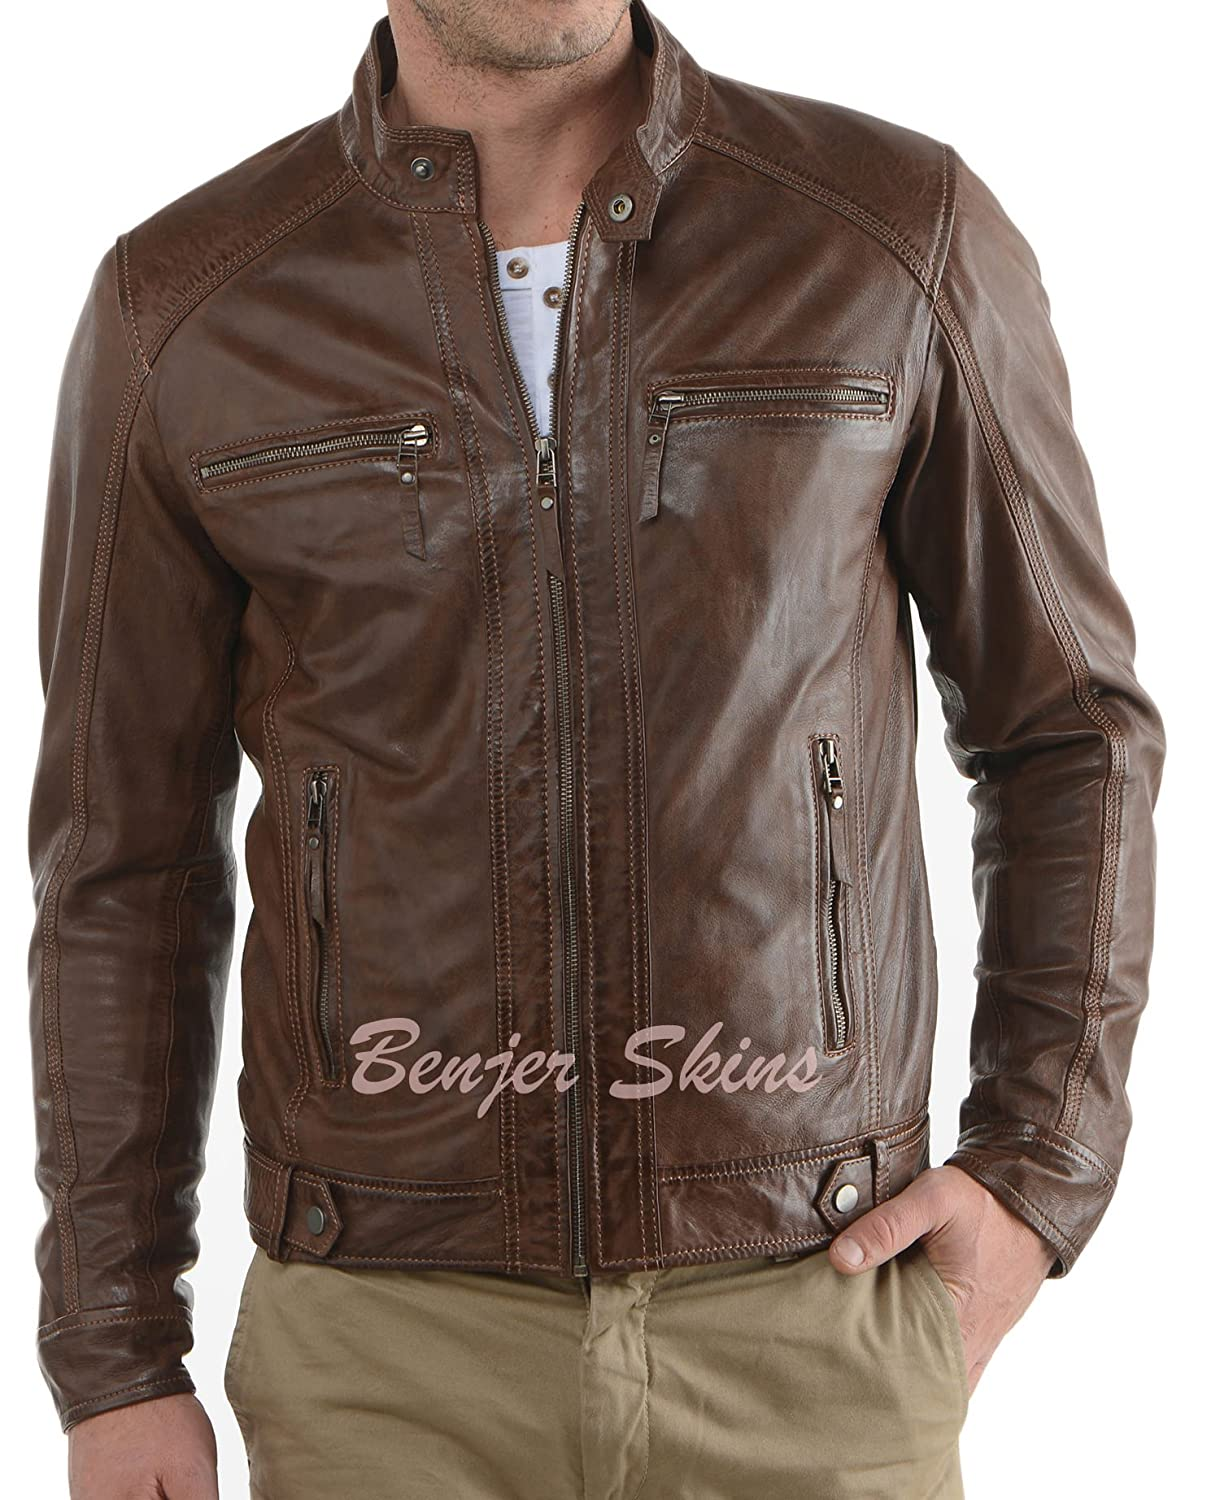 Benjer Skins Men's Stylish Lambskin Genuine Leather Jacket 23